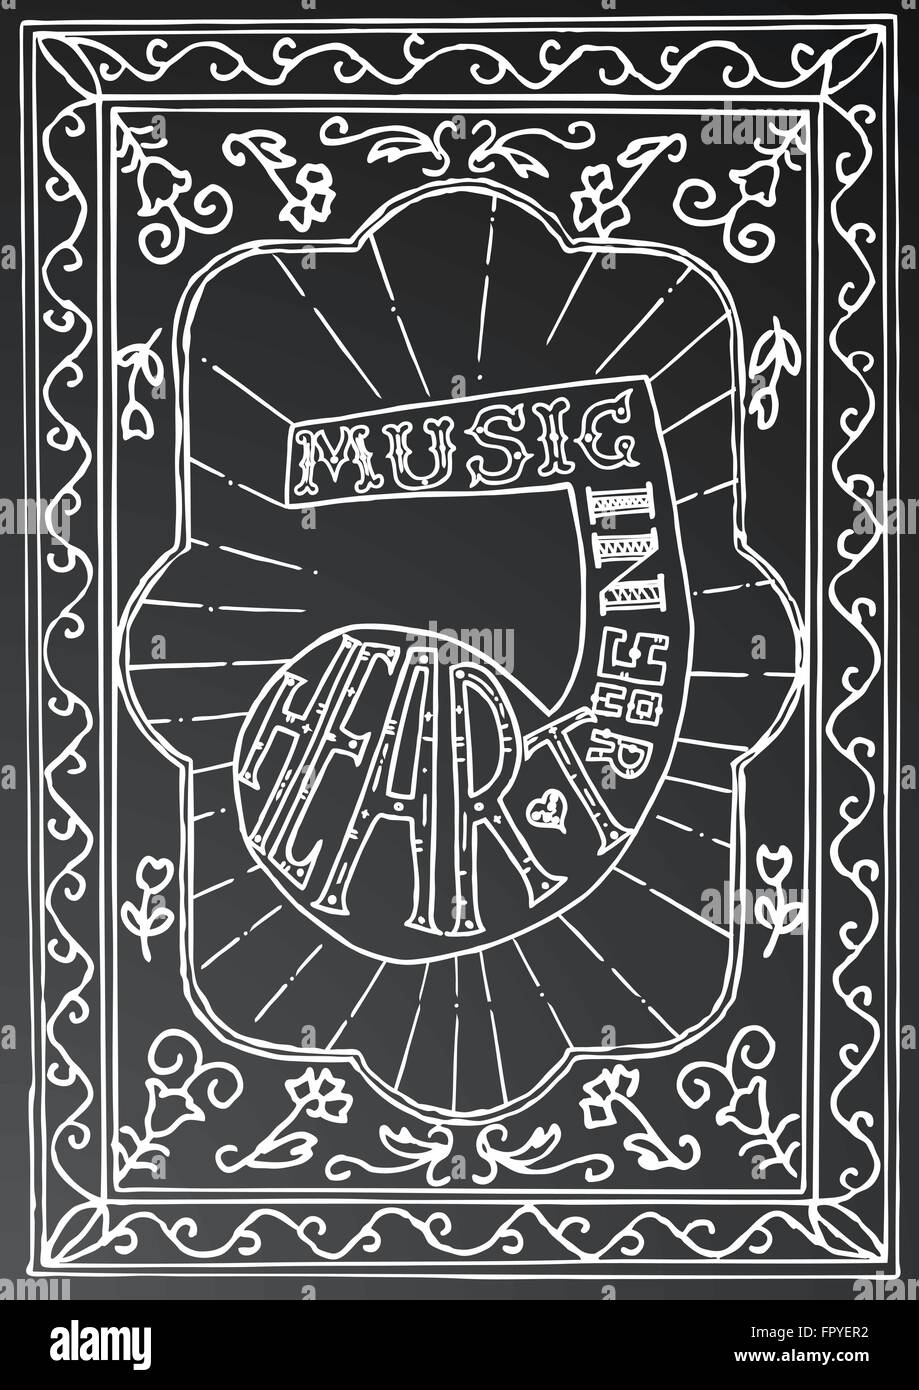 Hand Drawn Lettering Design With Music Note And Frame On Black Chalk Board Typography Concept For T Shirt